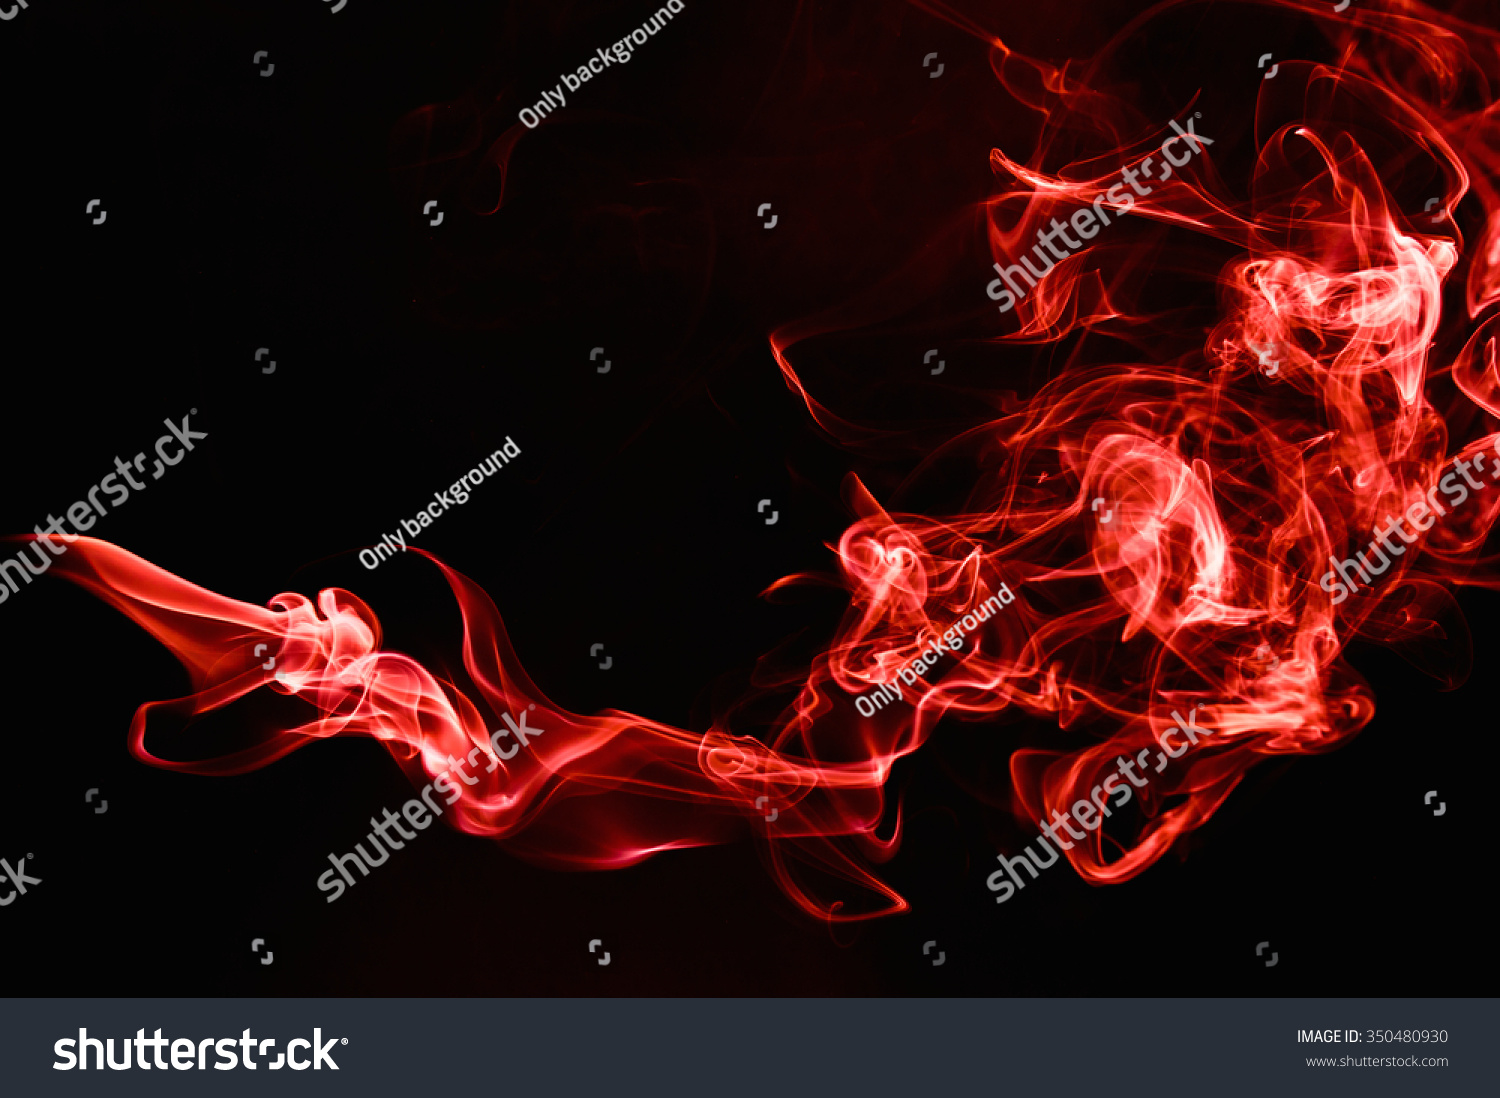 Red Smoke abstract background. #350480930